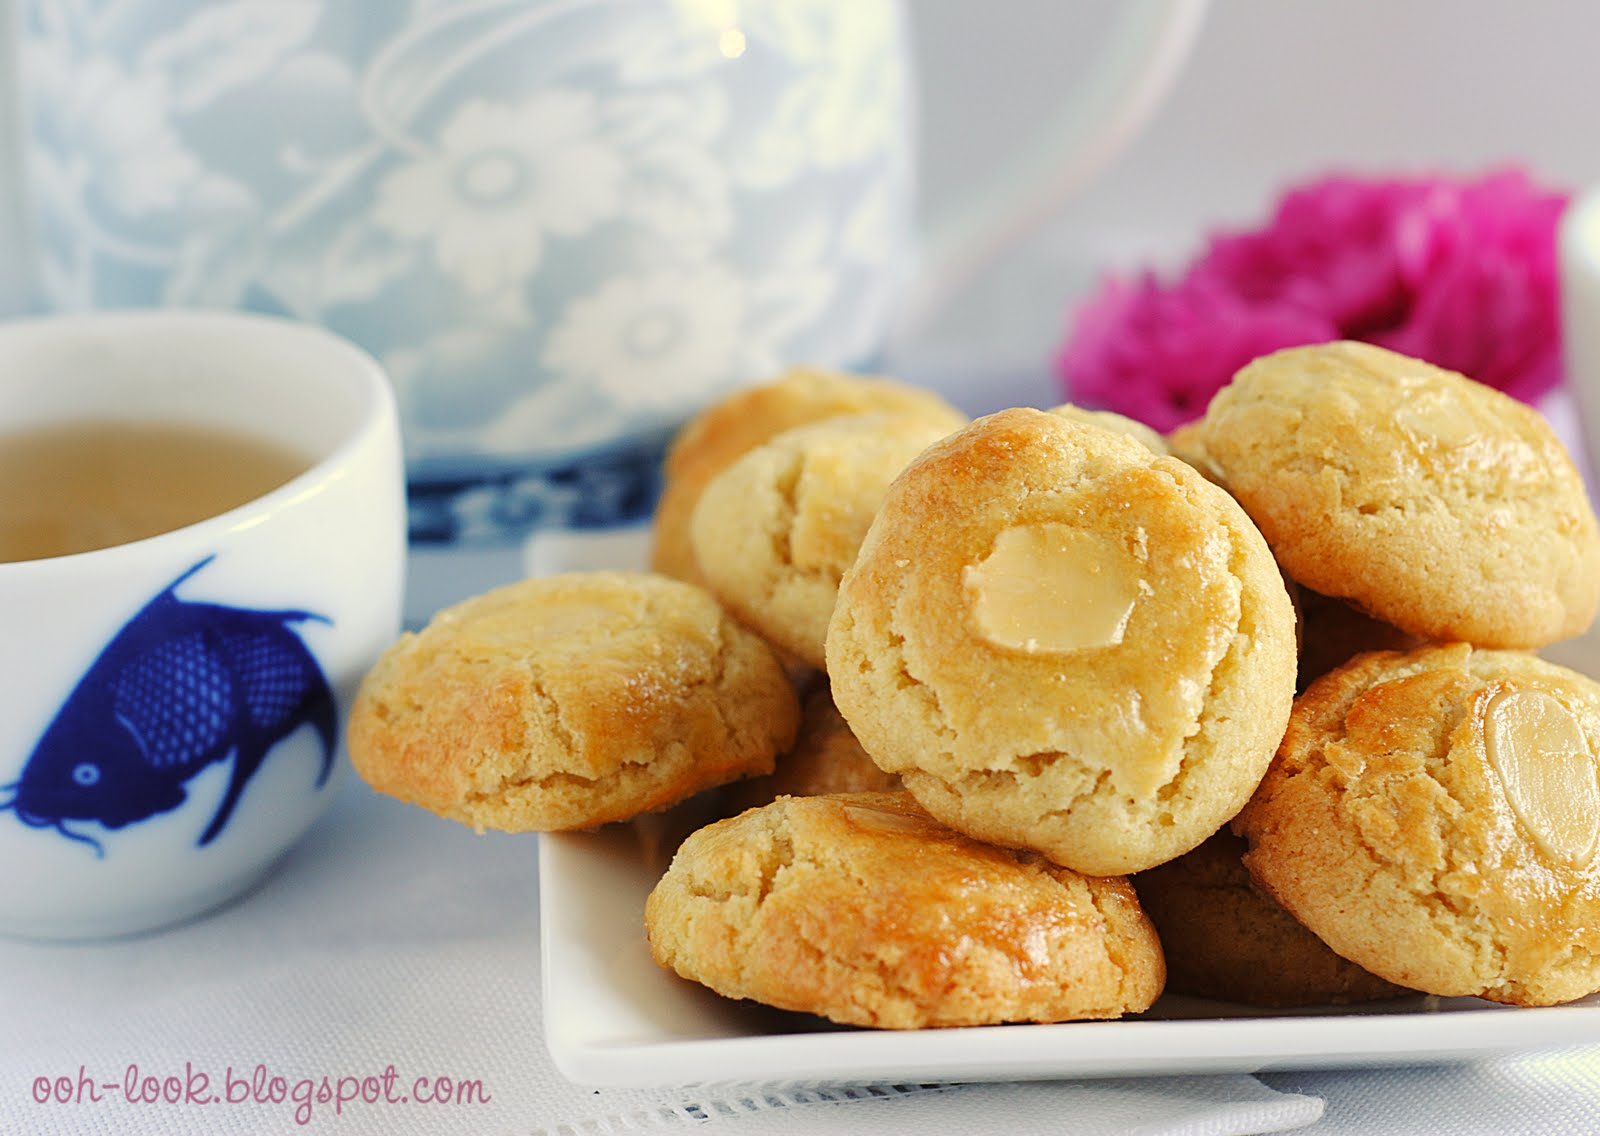 Ooh, Look...: Hello Chinese Almond Cookies - take two (or three)